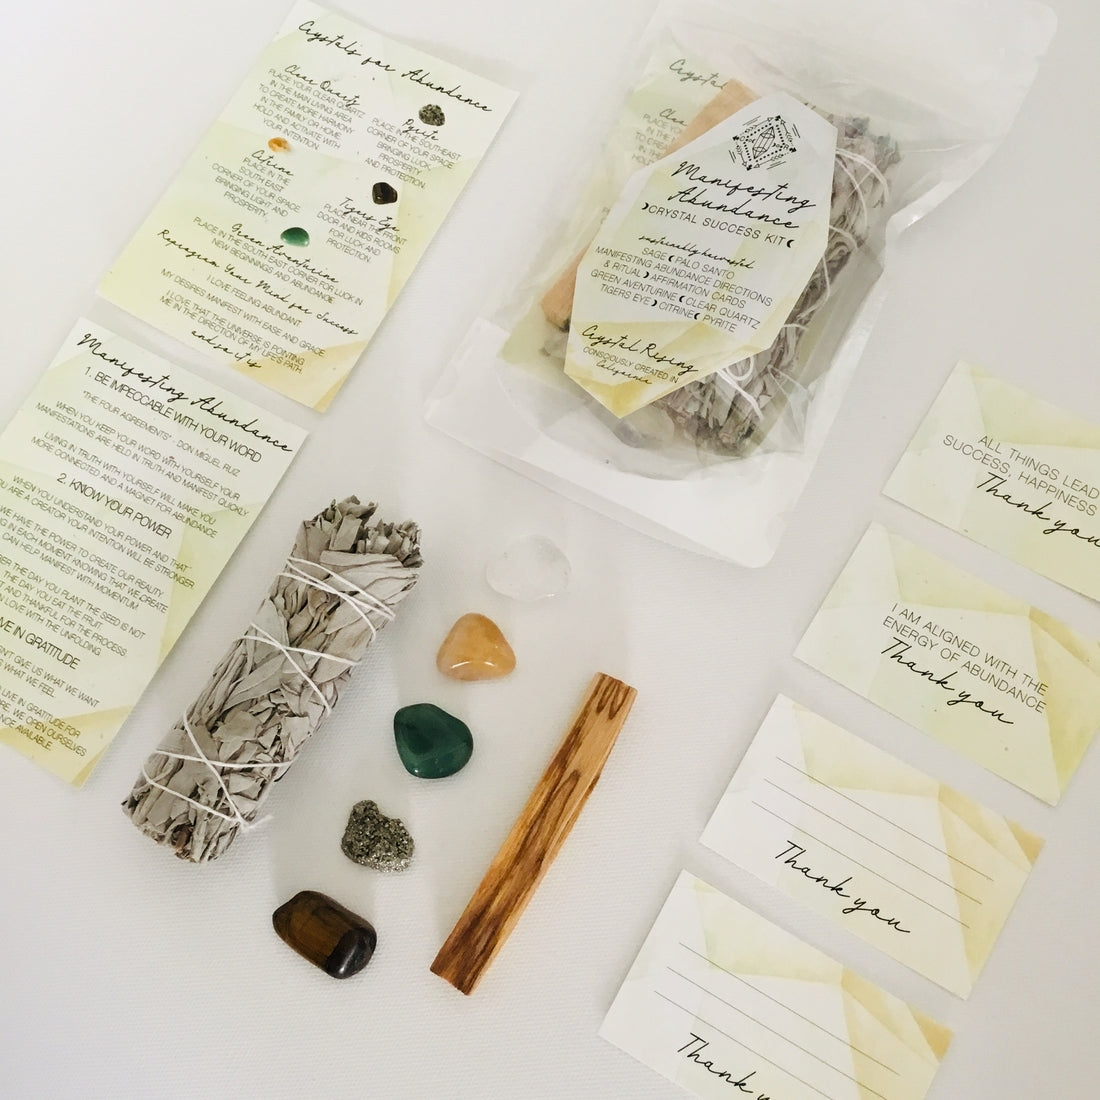 Manifesting Abundance Ritual Kit - Crystal Rising - for sale at Modest Hemp Co.